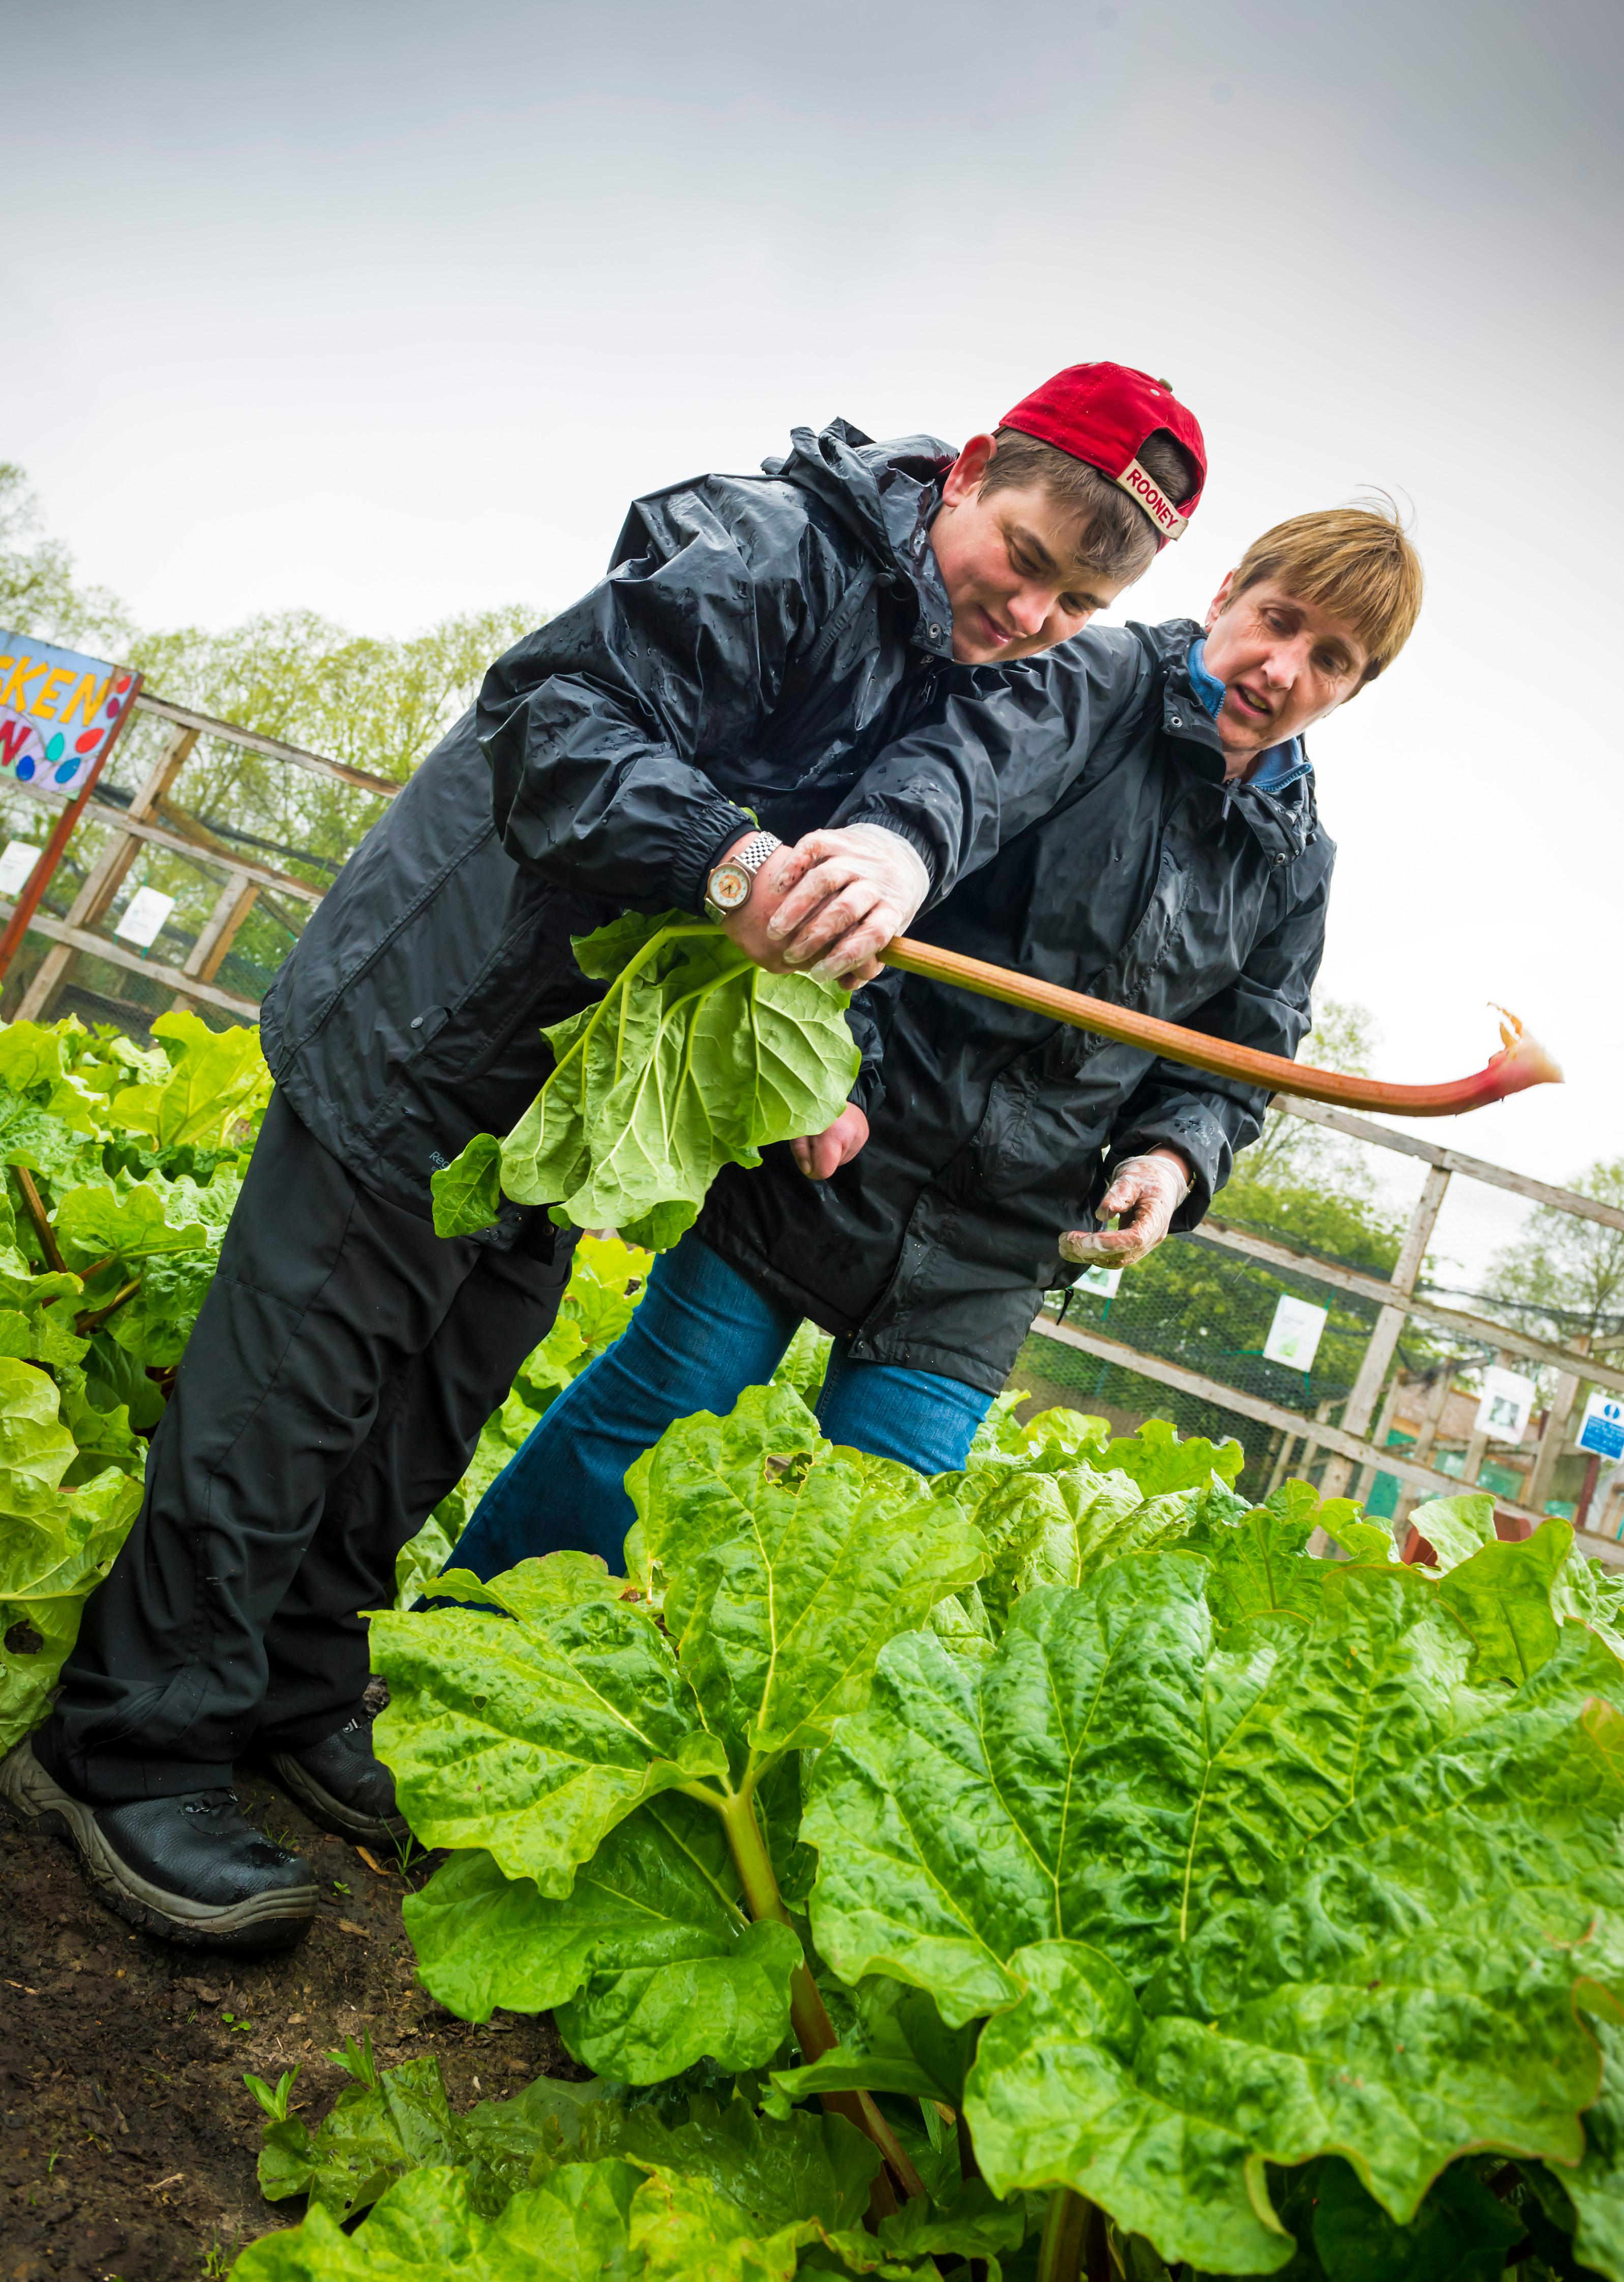 Oldham Council is developing a recipe for success using innovation to create a sustainable local food chain.